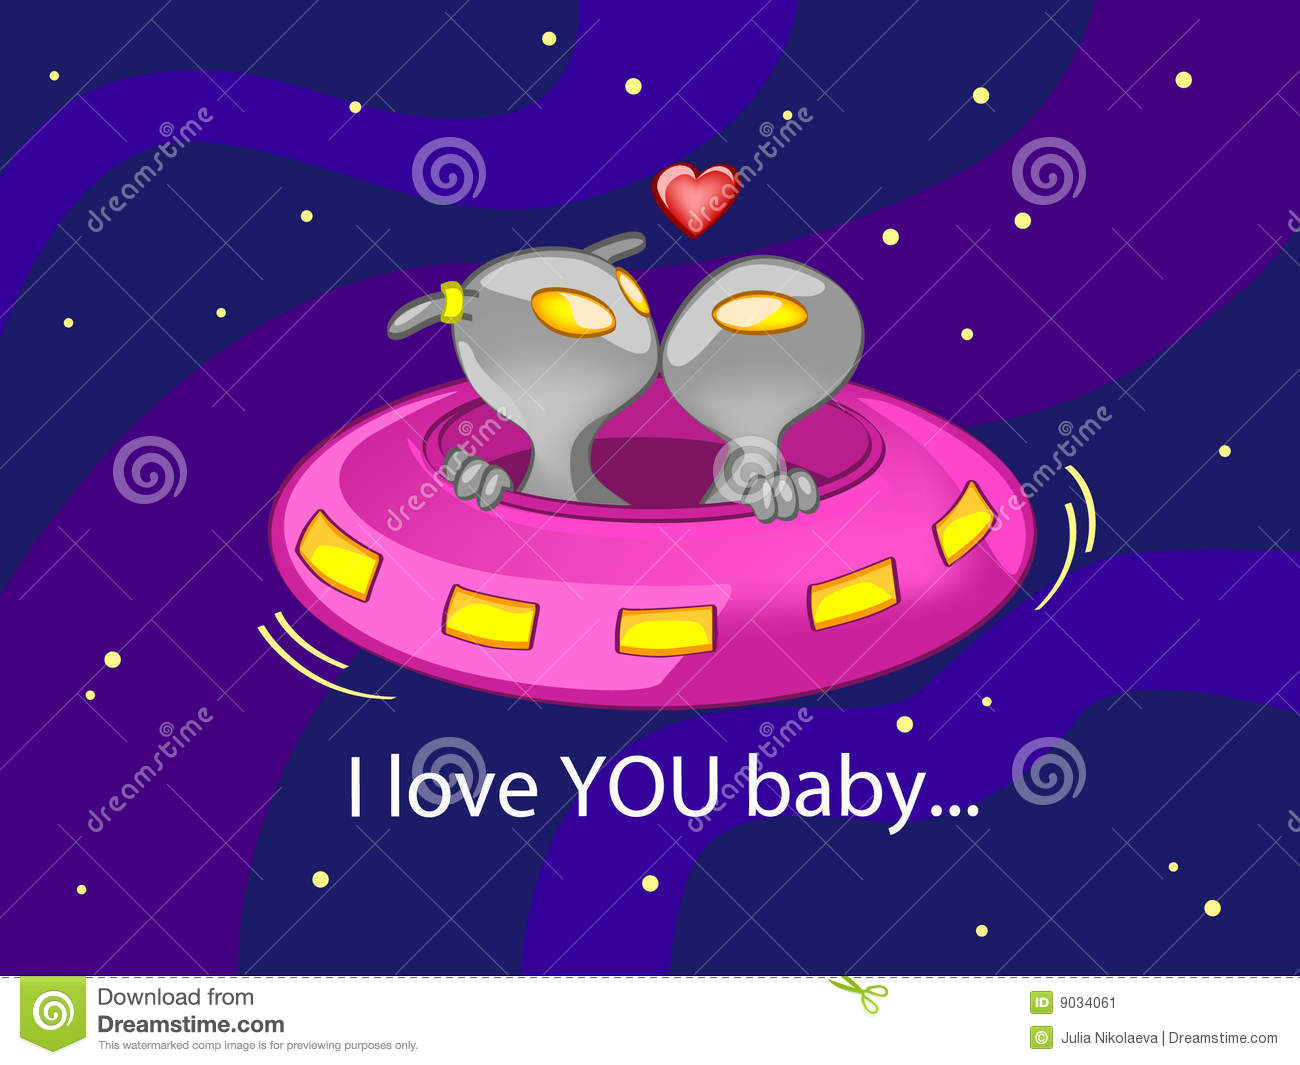 Stock Image: I love YOU baby